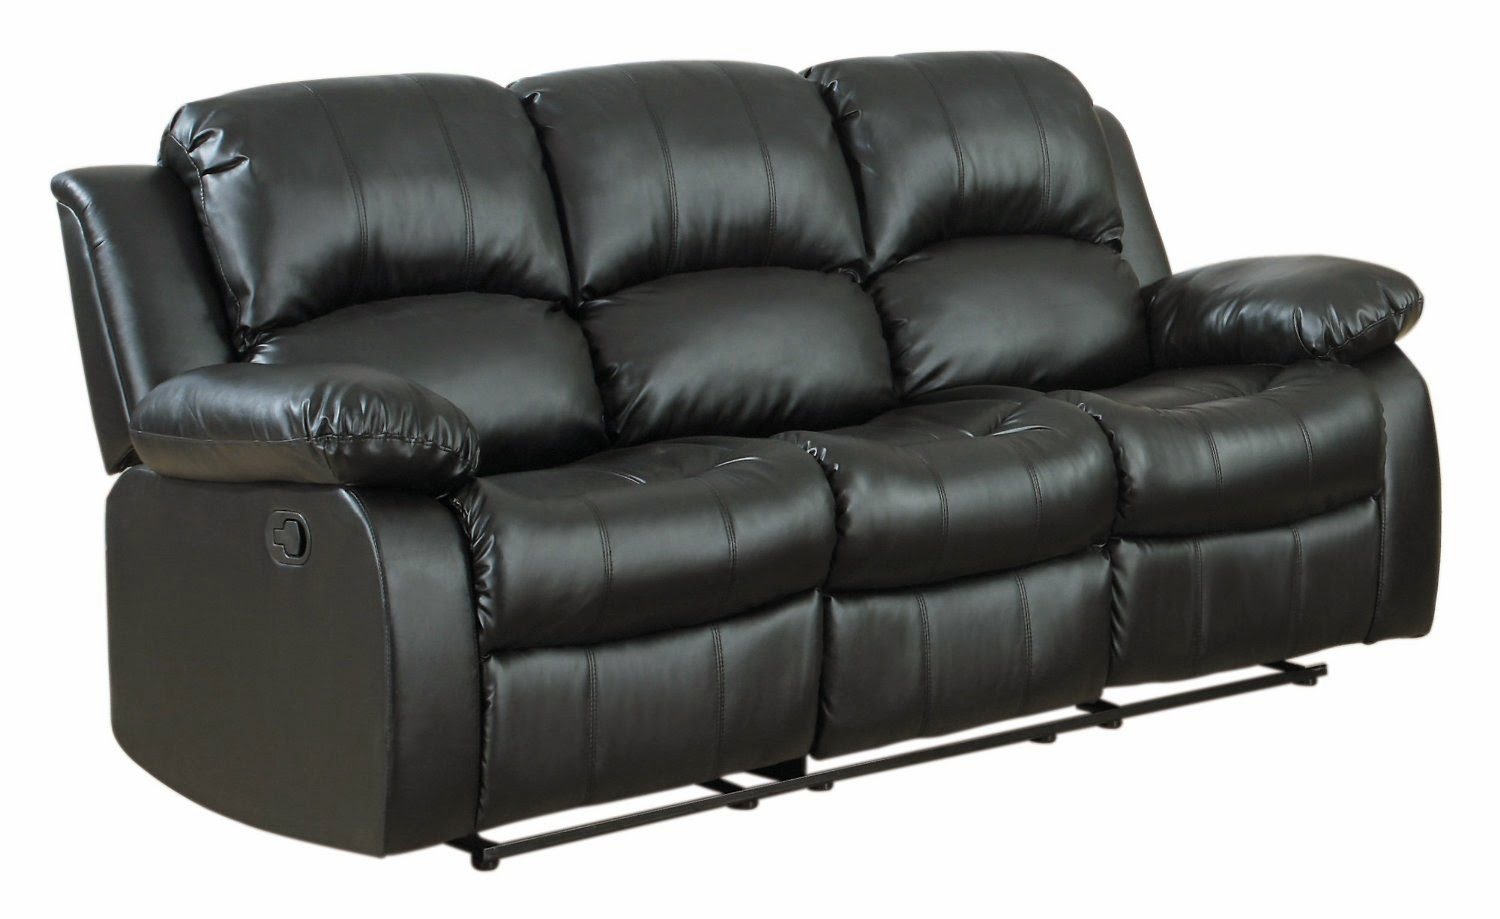 Top seller reclining and recliner sofa loveseat power for Couch and loveseat